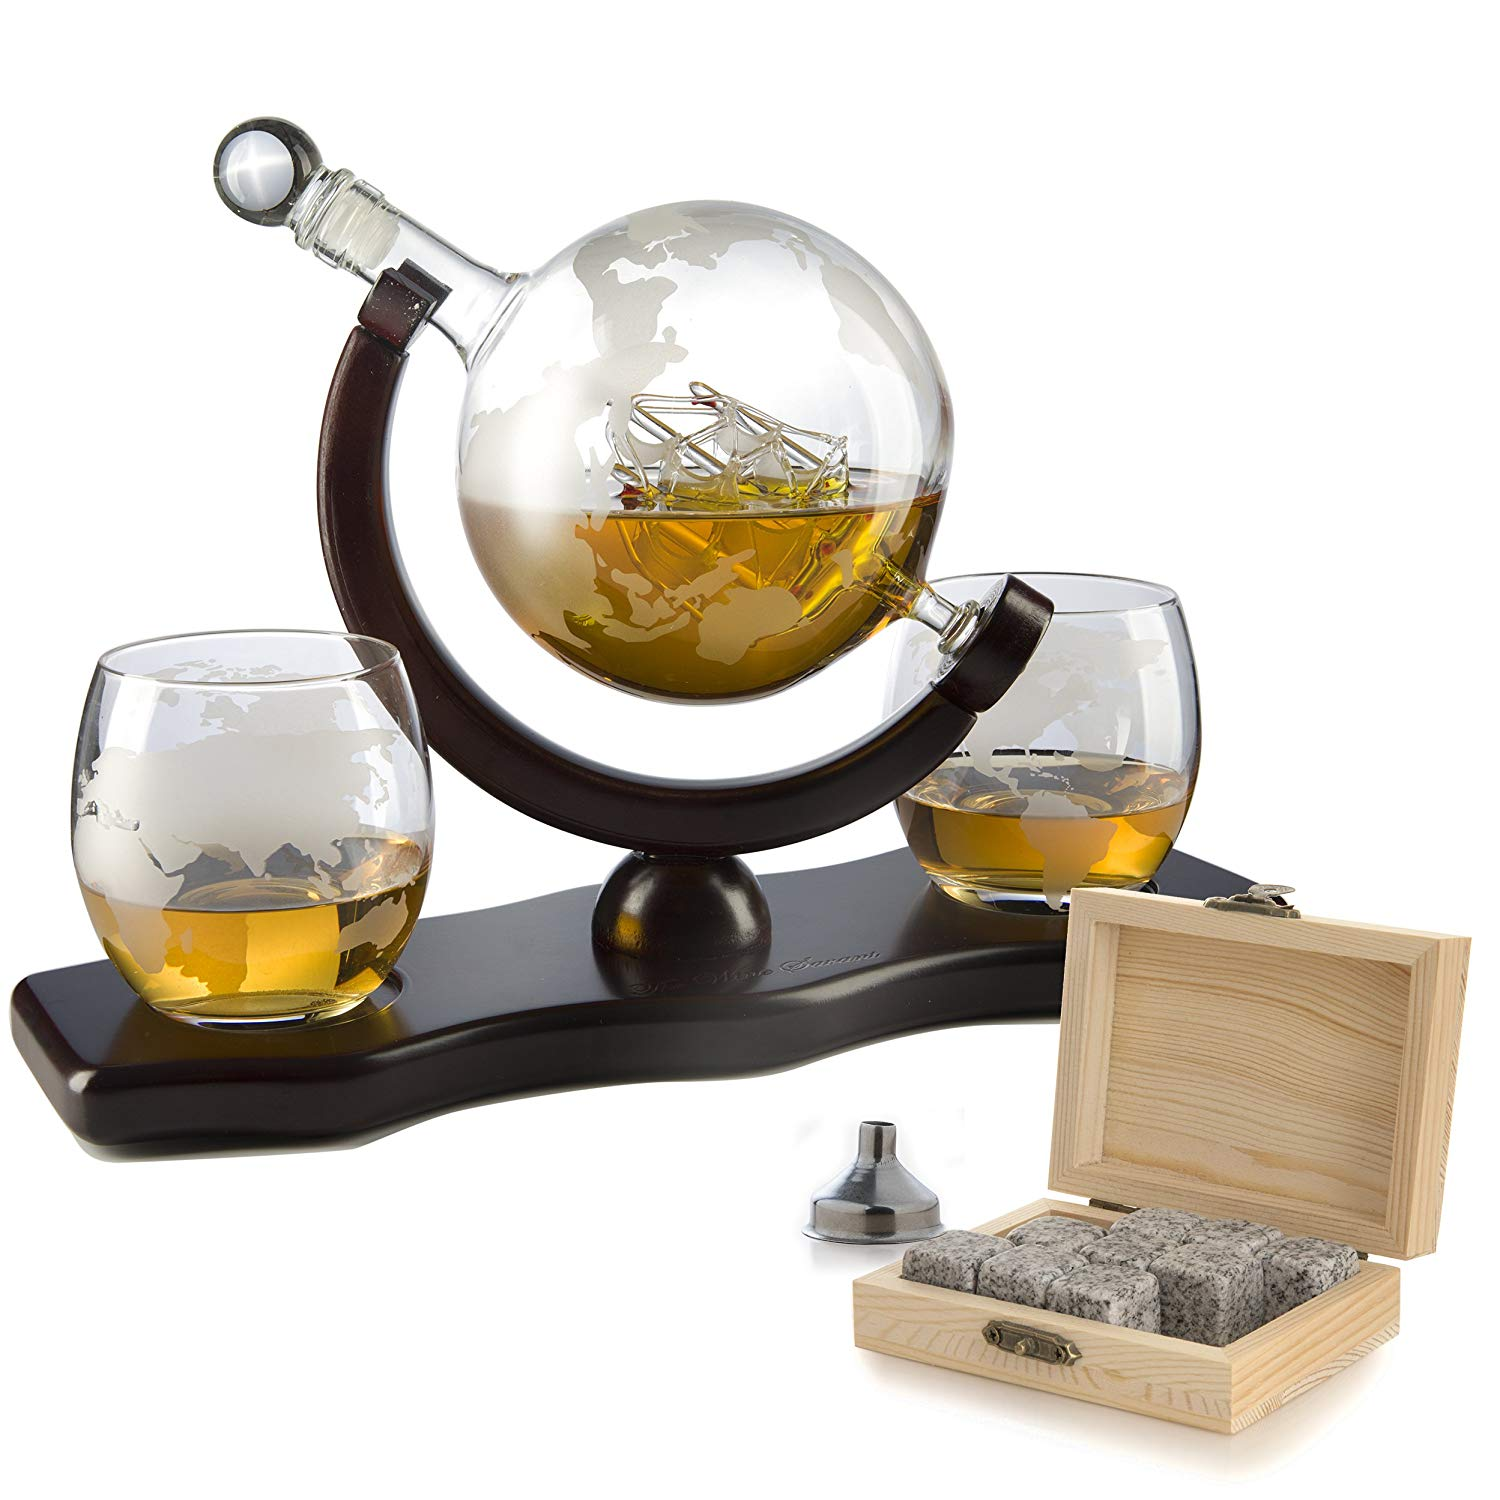 The Wine Savant Globe Decanter